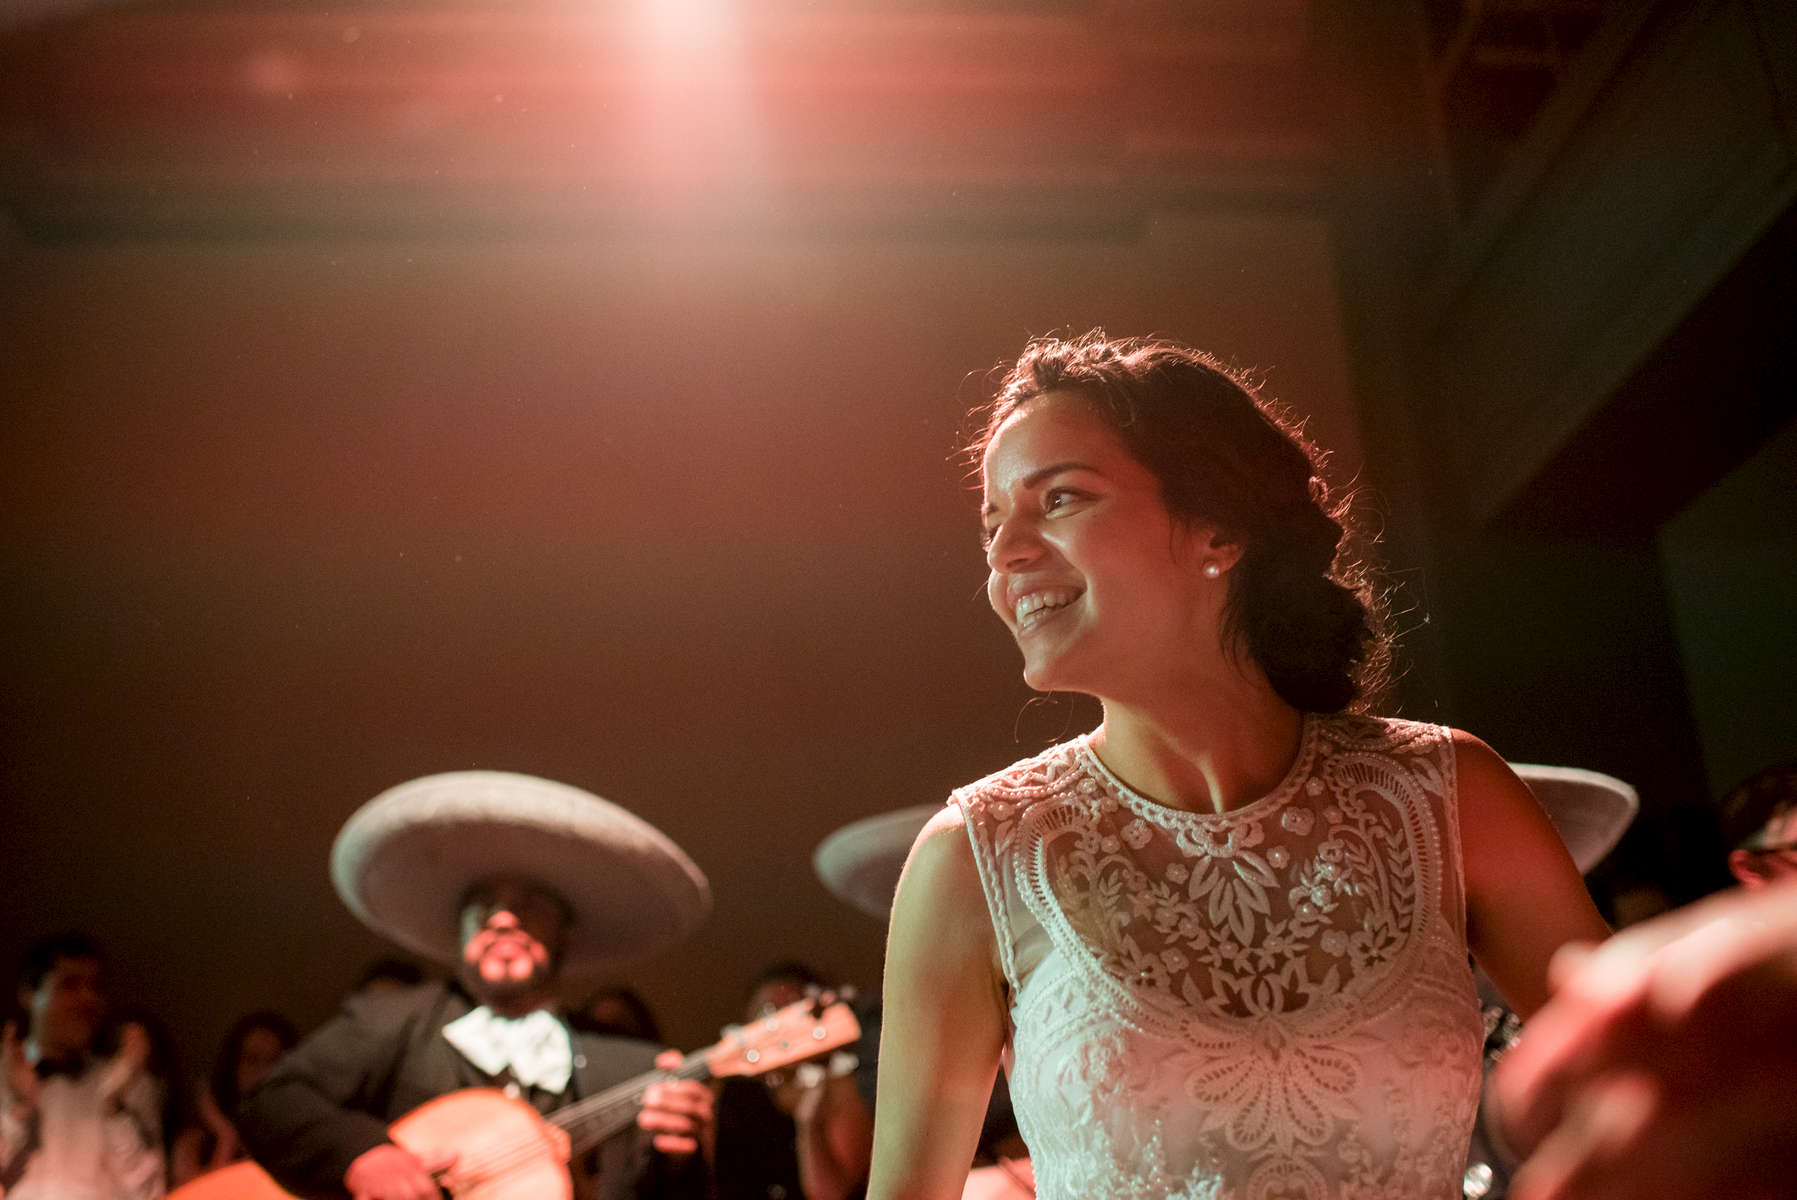 Alma Guerrero and Barrett Bready wedding on May 2, 2015. Photo by Paul Morse